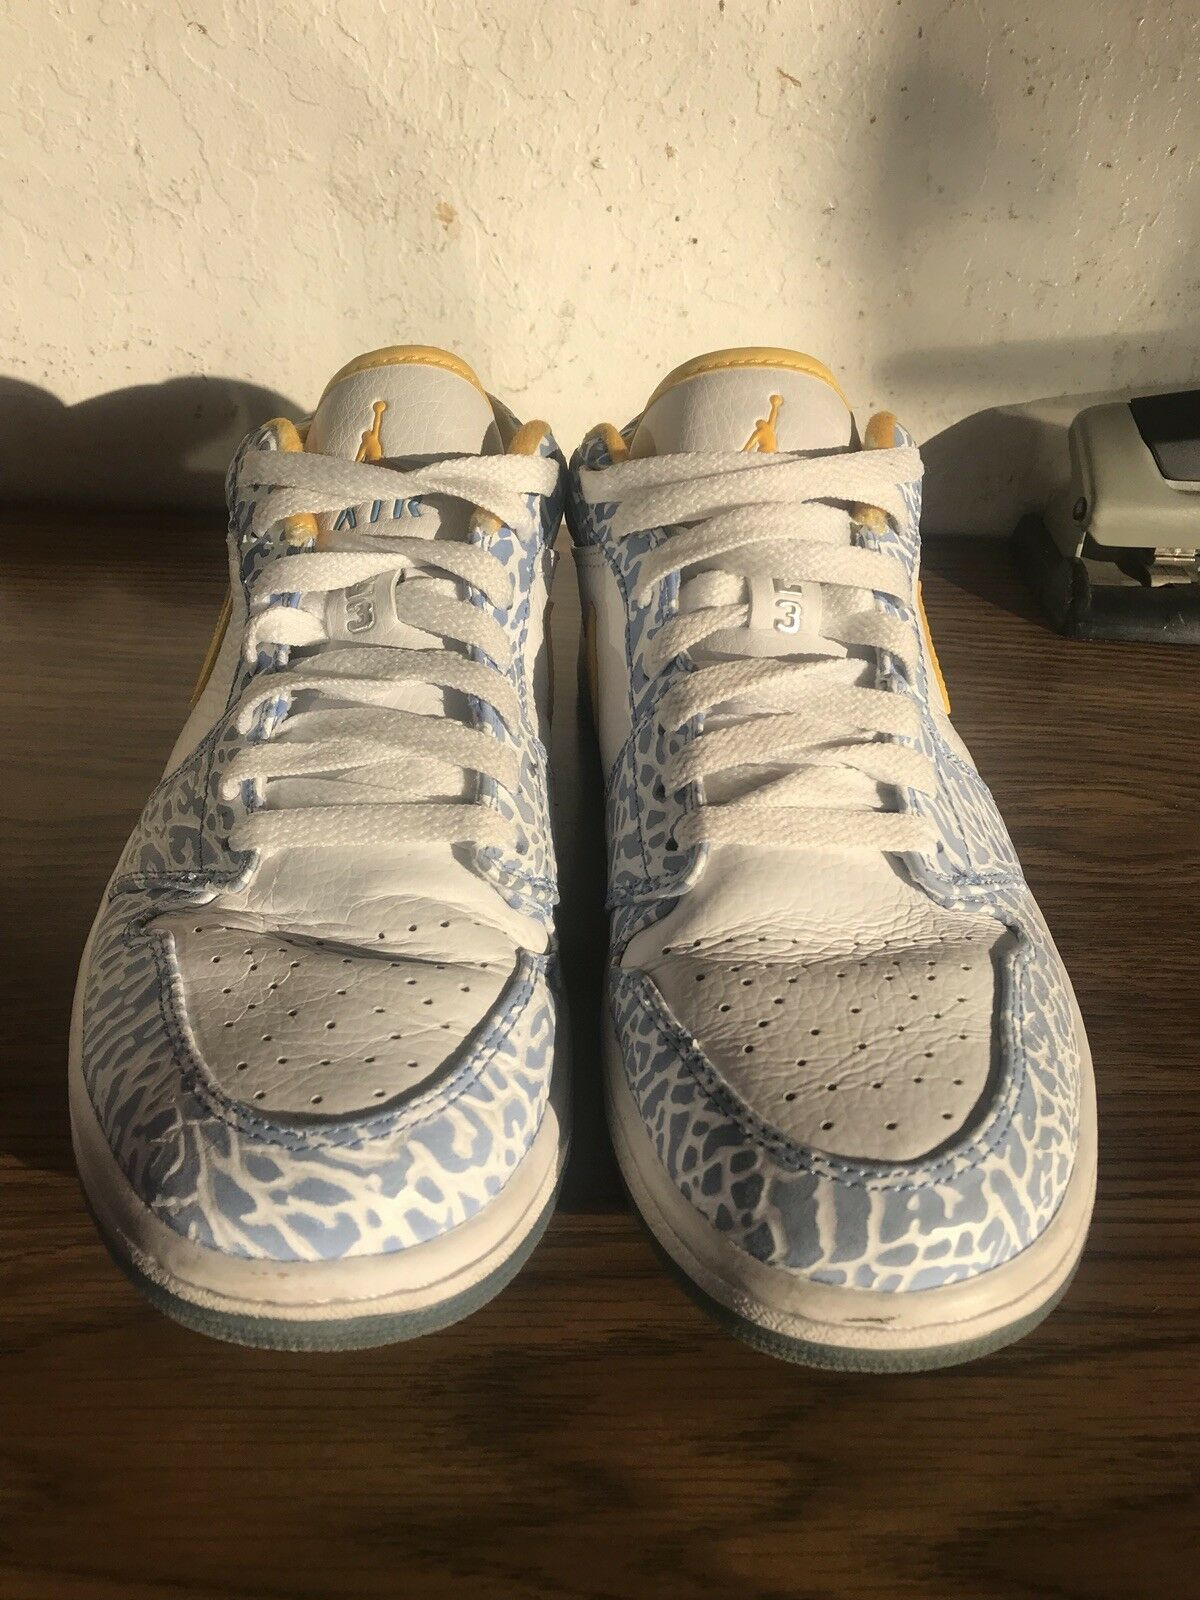 air jordan 1 retro low west side side west Blanc yellow Bleu cement Taille 8 76043f